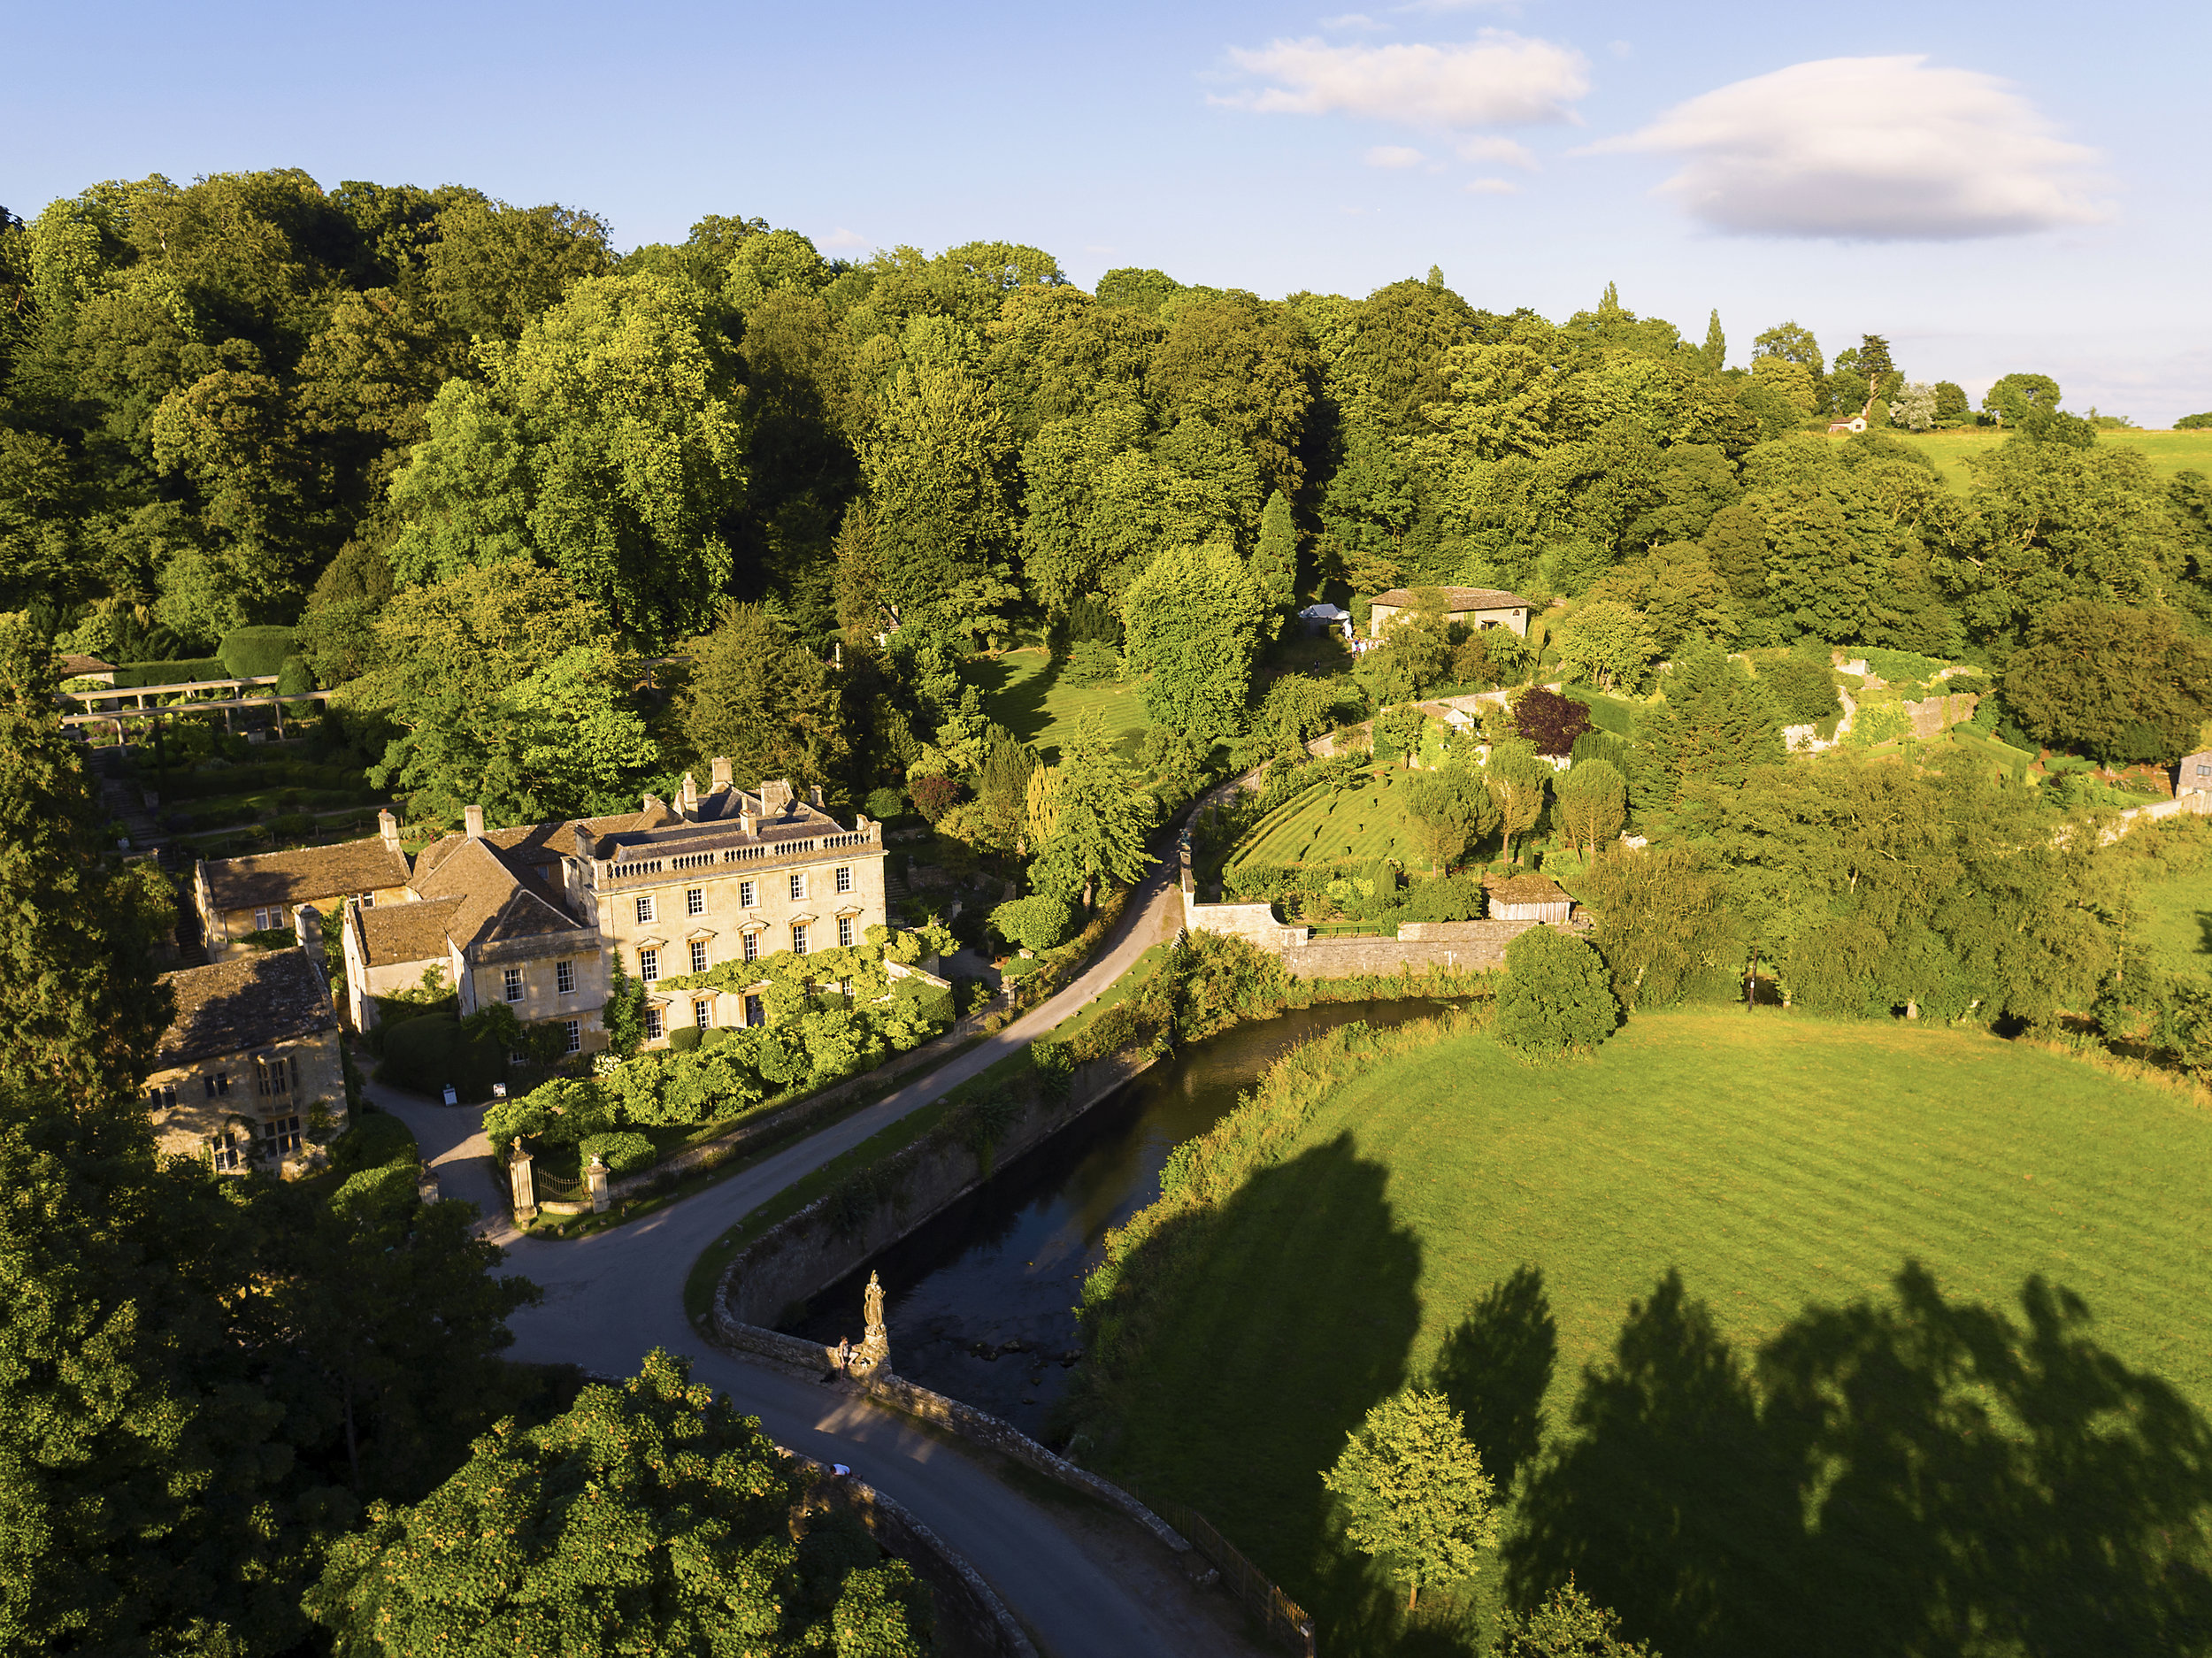 Iford Manor from the Air